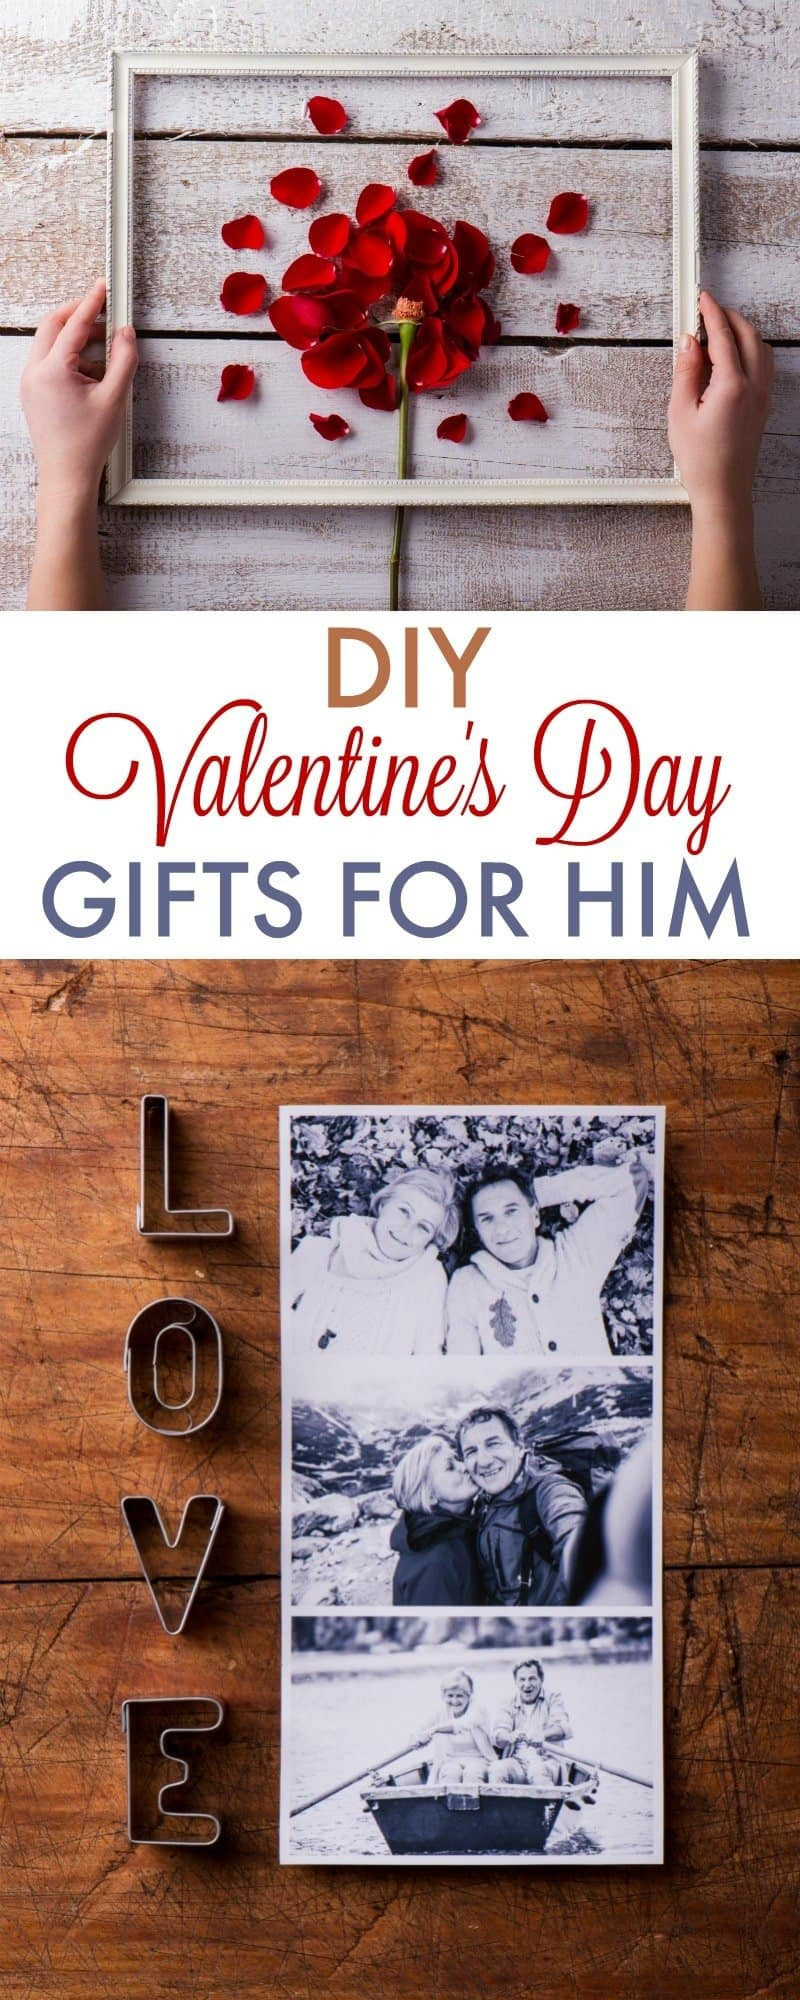 Best ideas about Valentines Day Gift Ideas For Boyfriend . Save or Pin DIY Valentine s Day Gifts for Boyfriend 730 Sage Street Now.